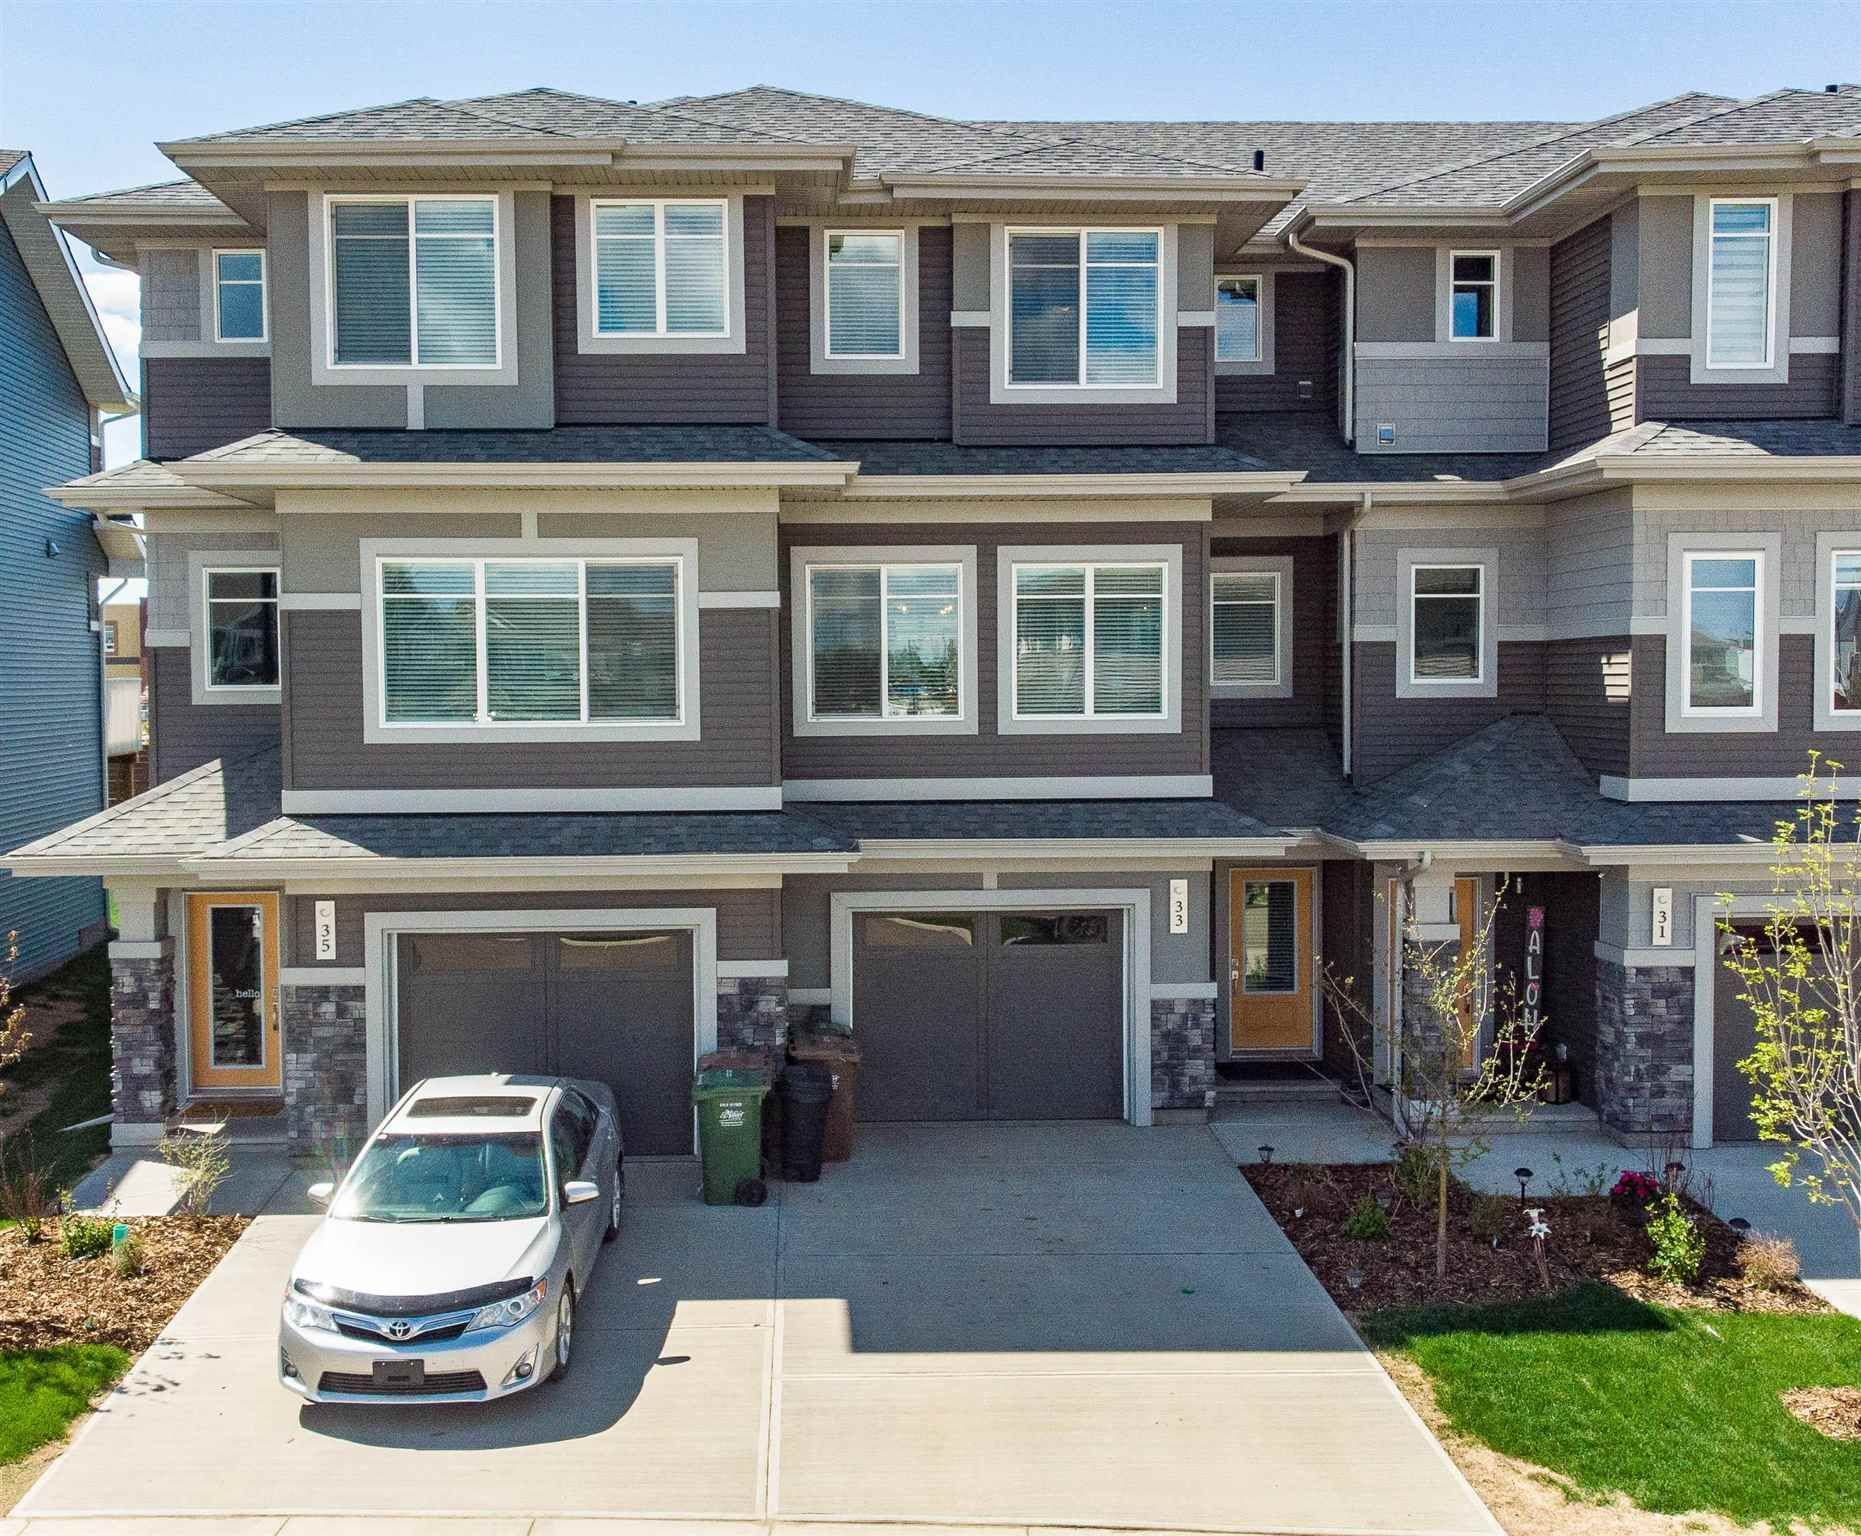 Main Photo: 33 JOYAL Way: St. Albert Attached Home for sale : MLS®# E4247048